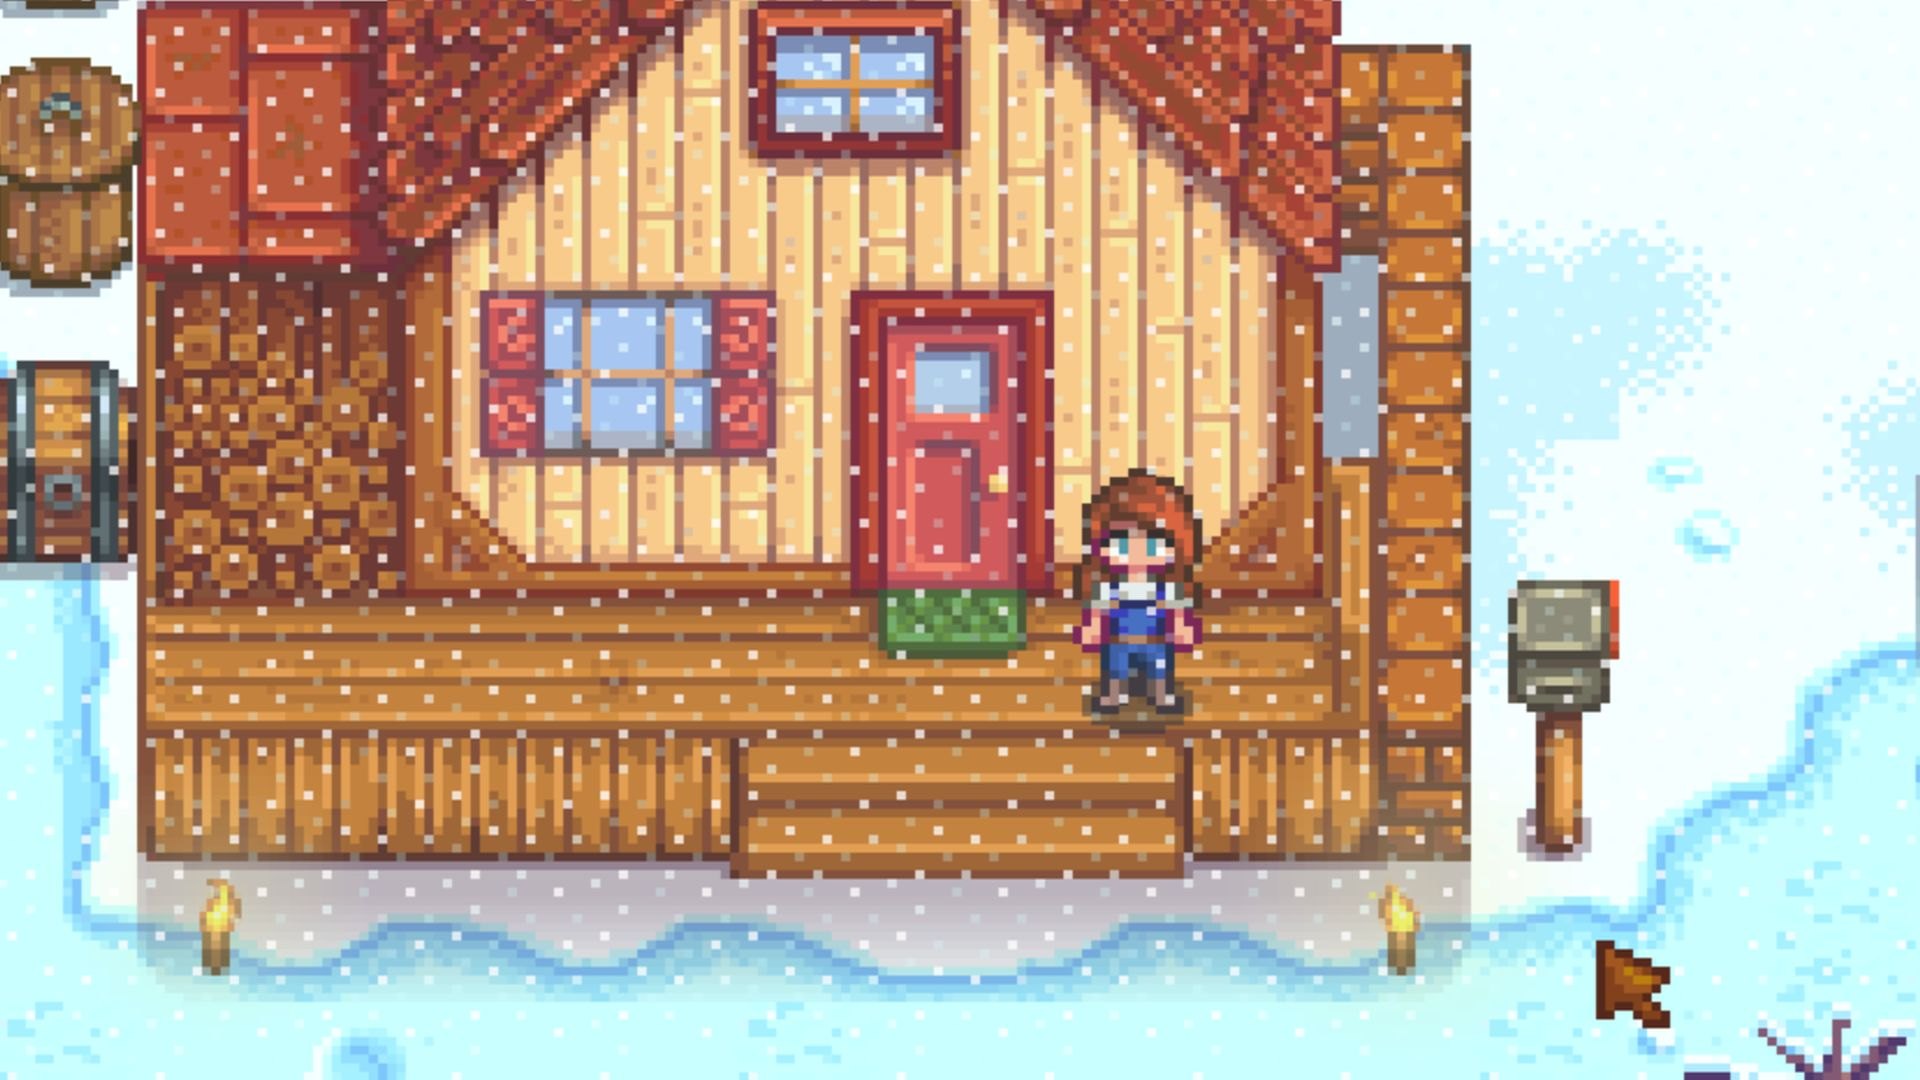 Stardew Valley fans are very excited about transferring boot stats